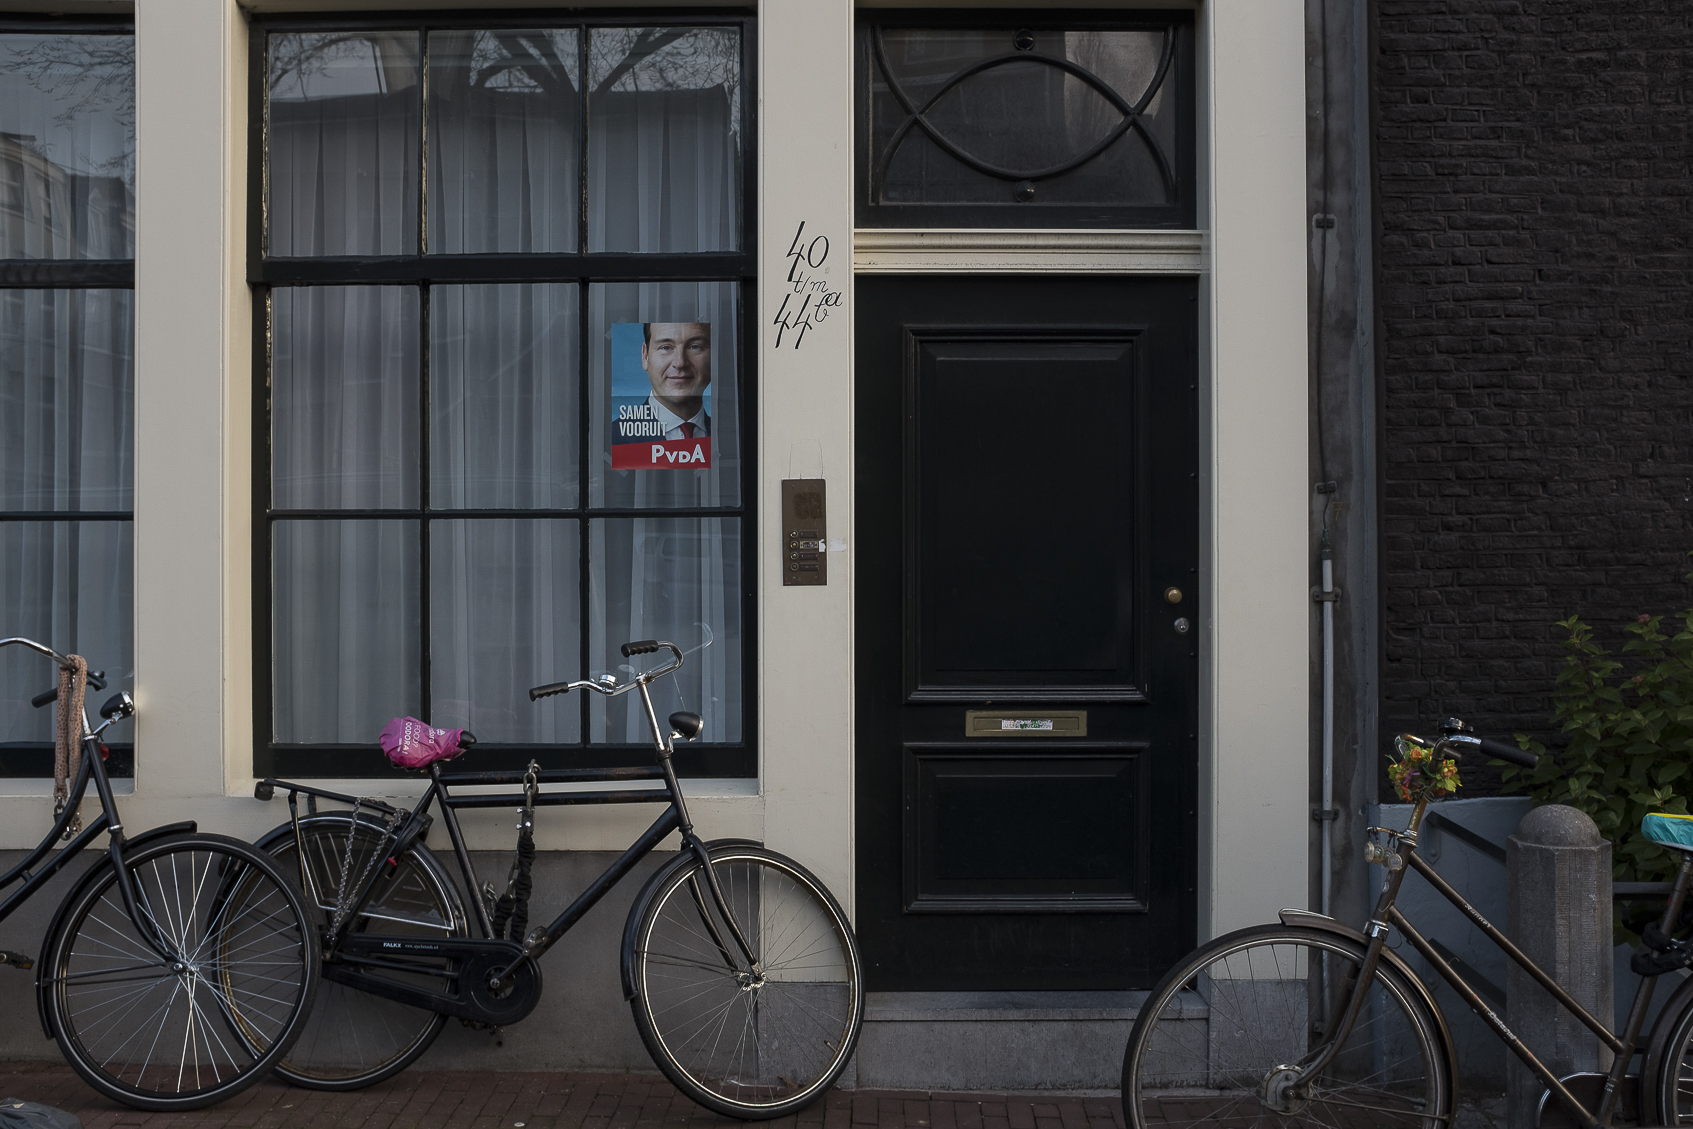 A poster of one of the candidtes in the Dutch general elections in the window of a resident in Amsterdam, Netherlands. March 14, 2017.